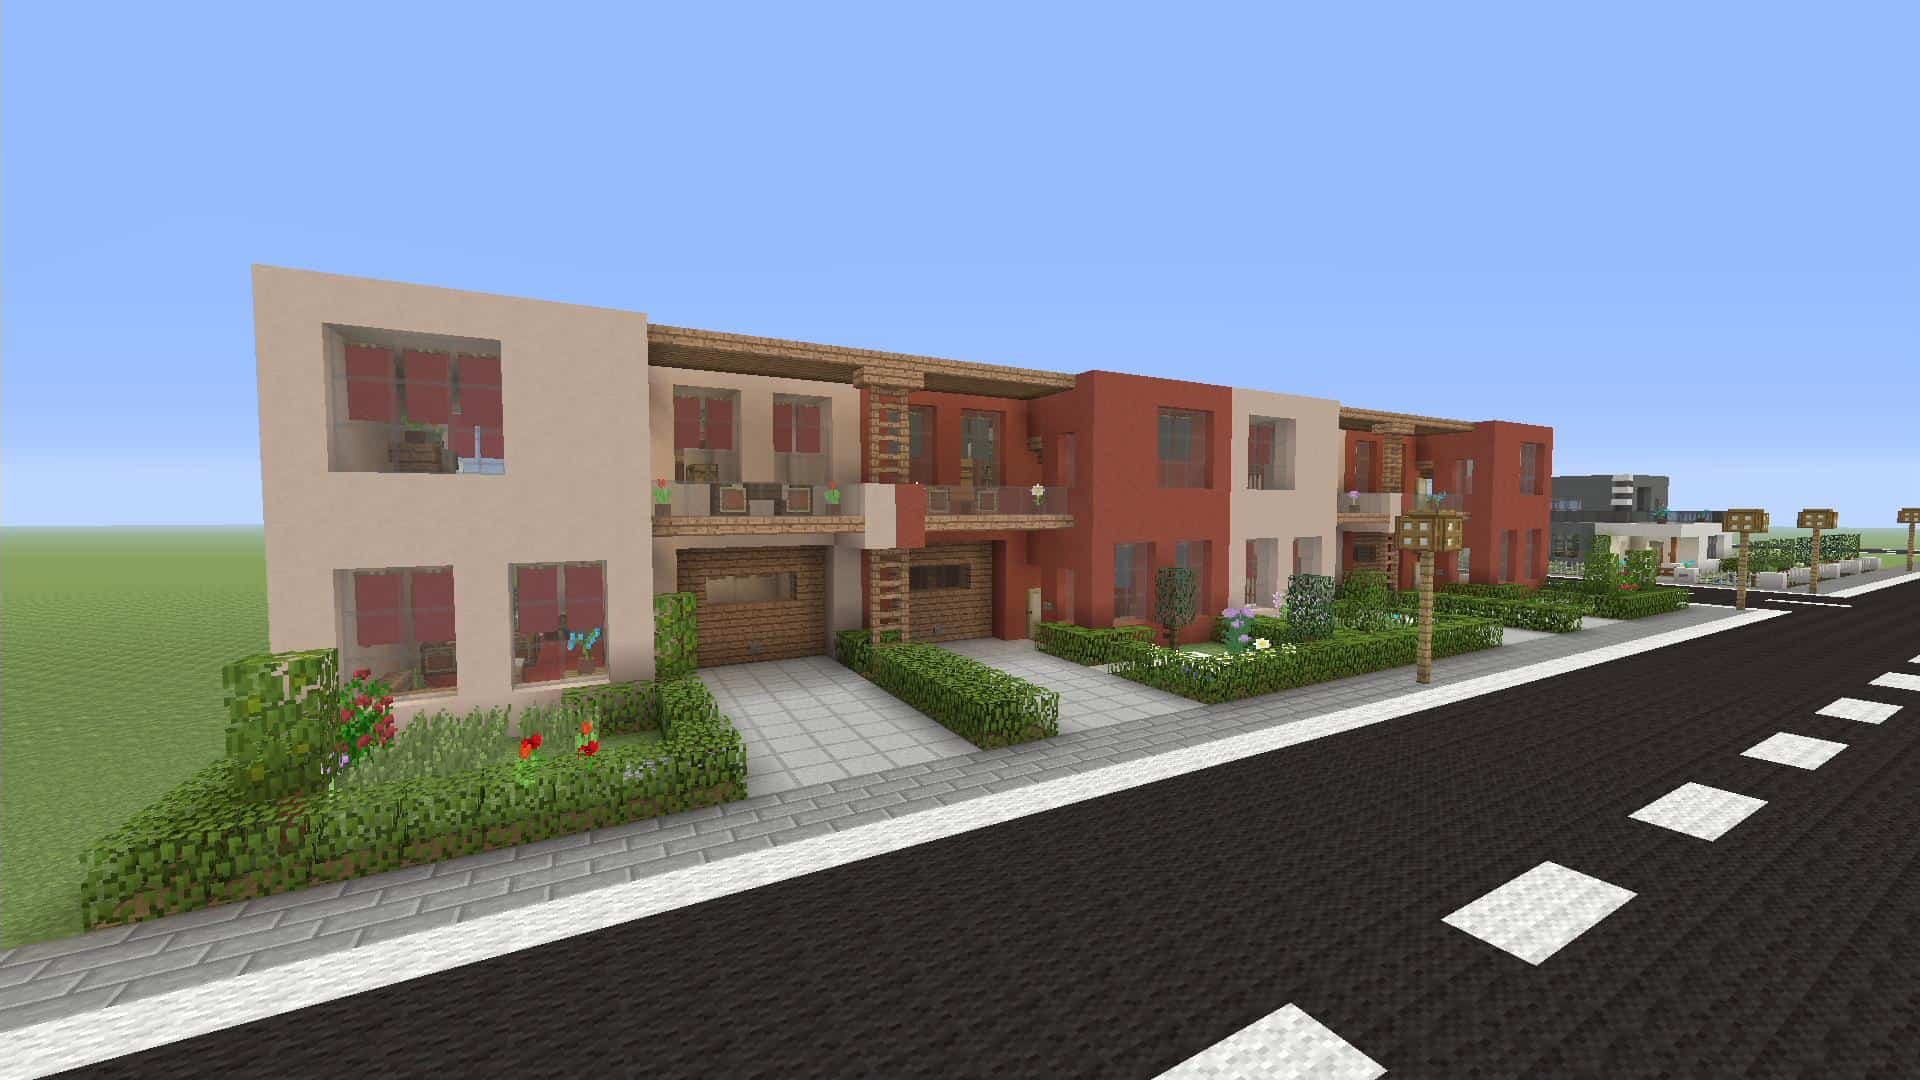 Minecraft How To Make Row Houses Xbox One Minecraft Building Inc